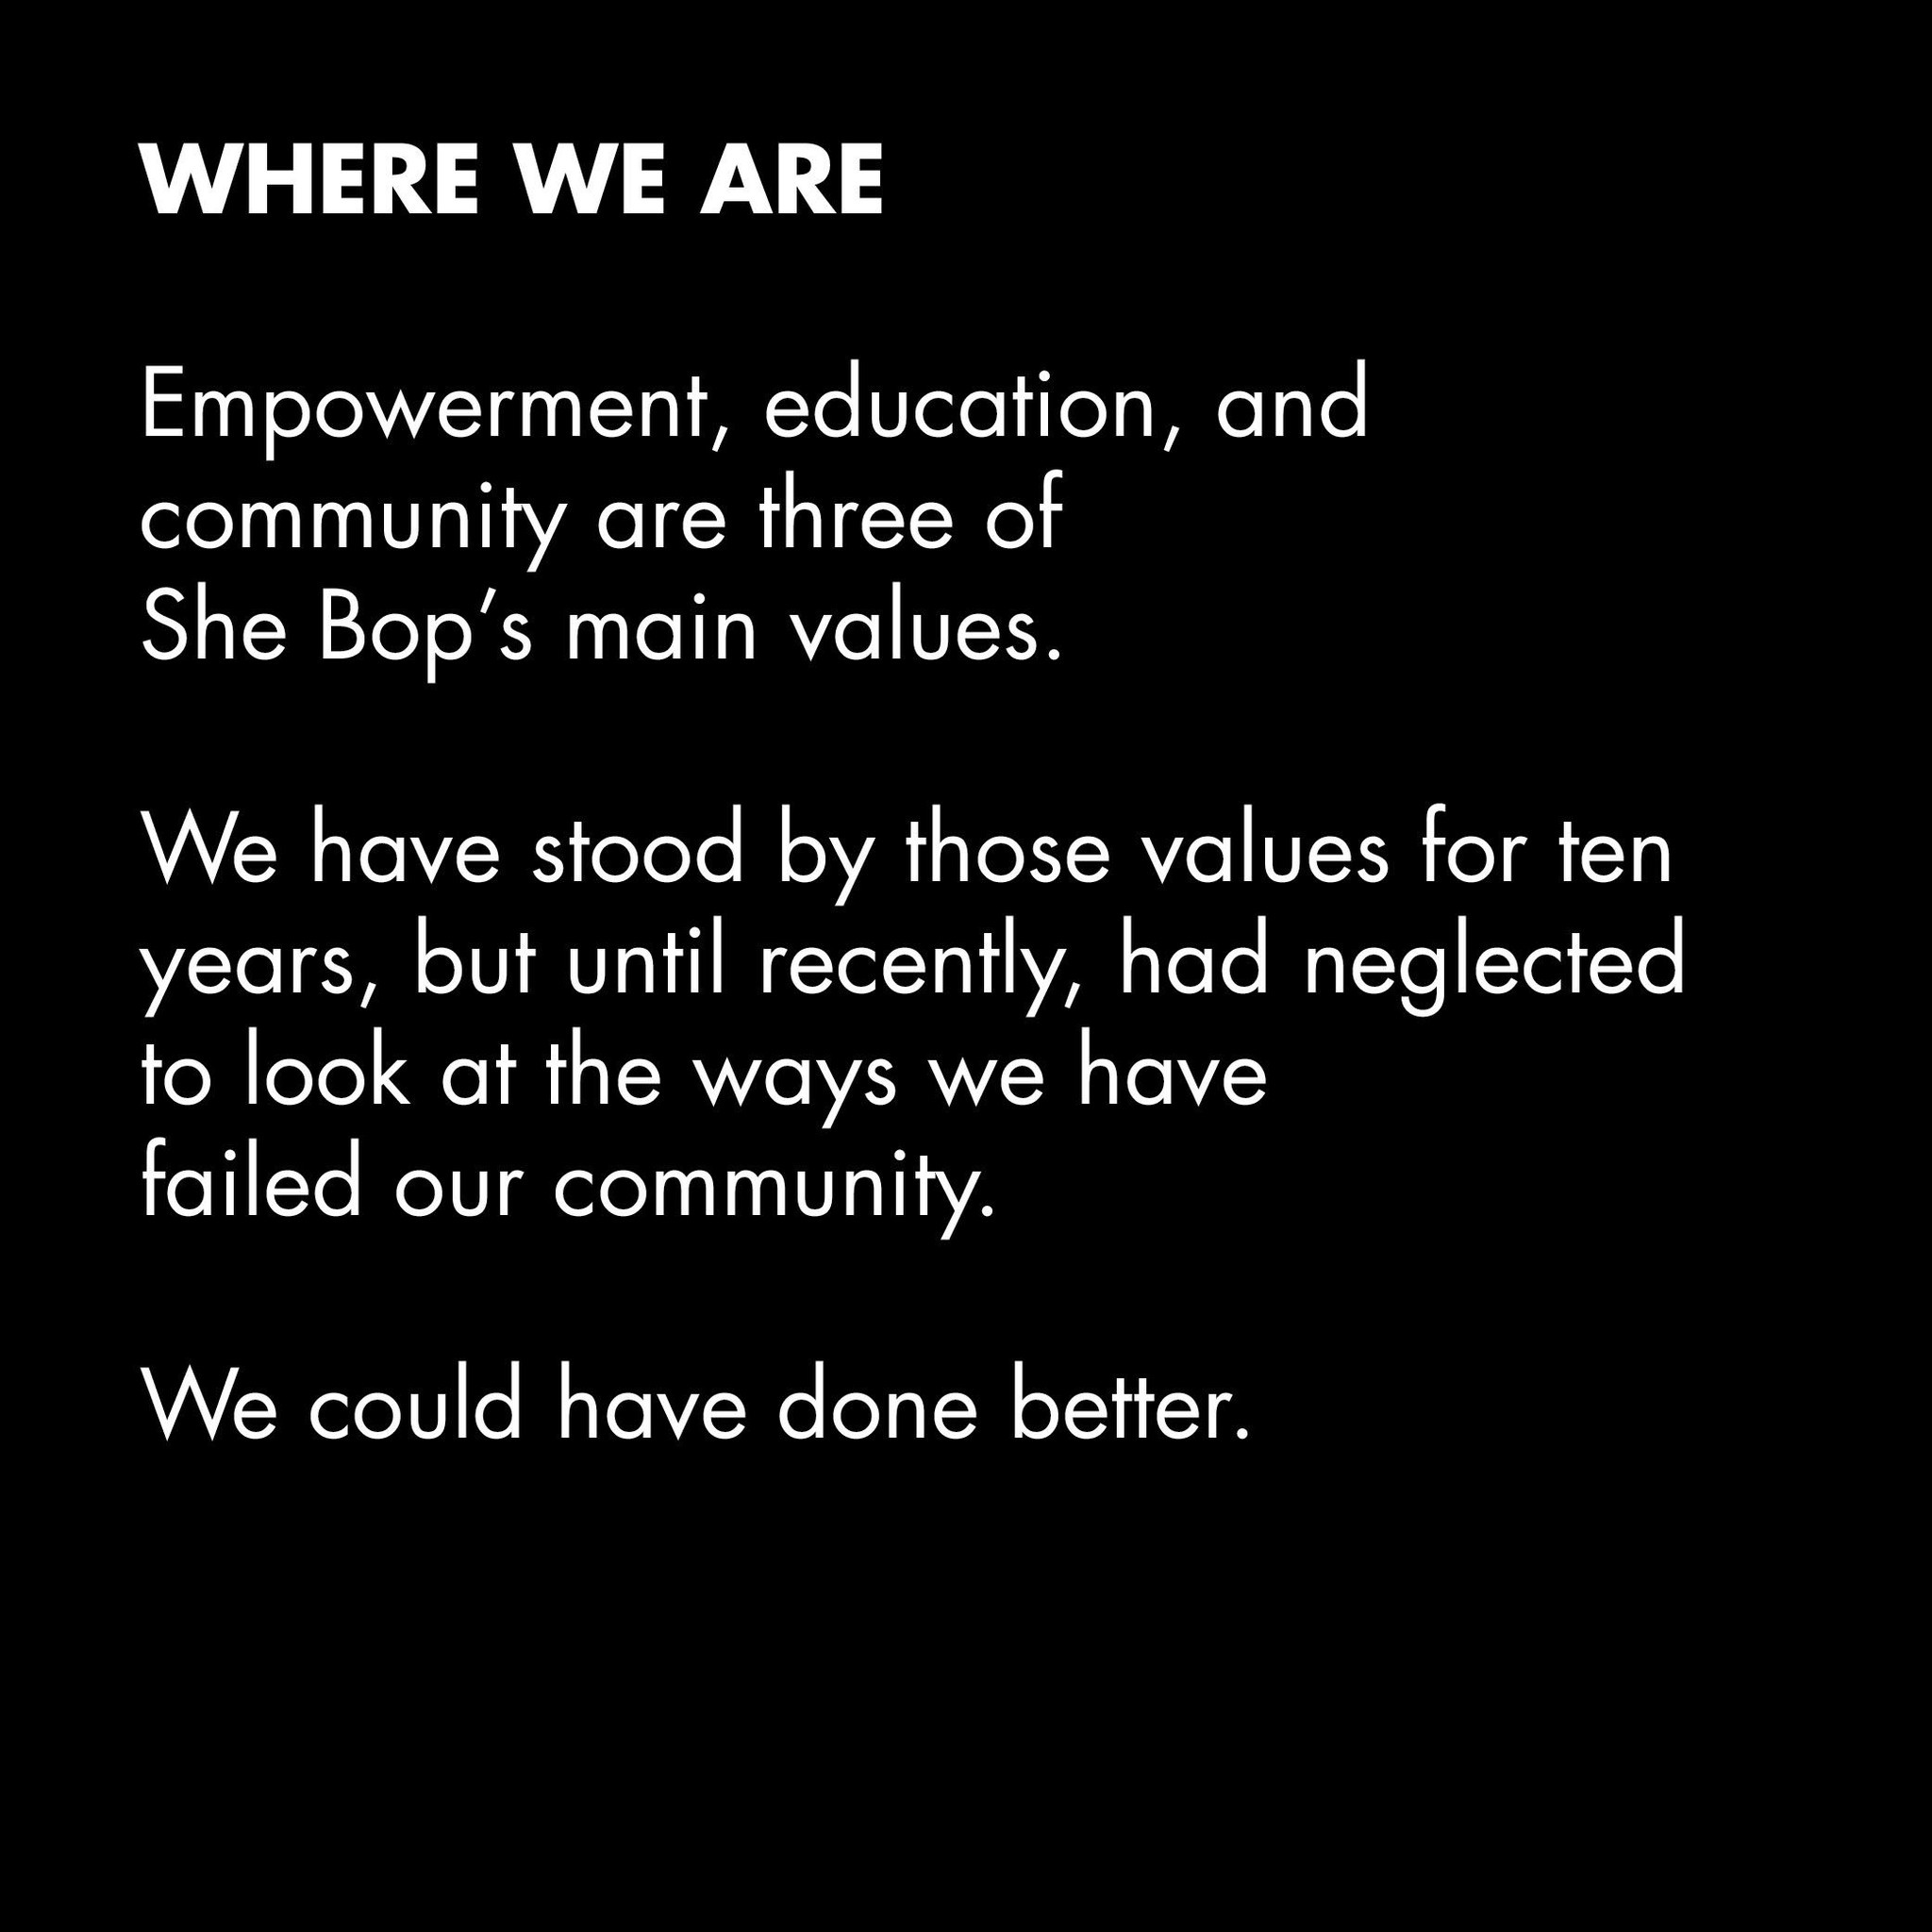 Our pledge to do better